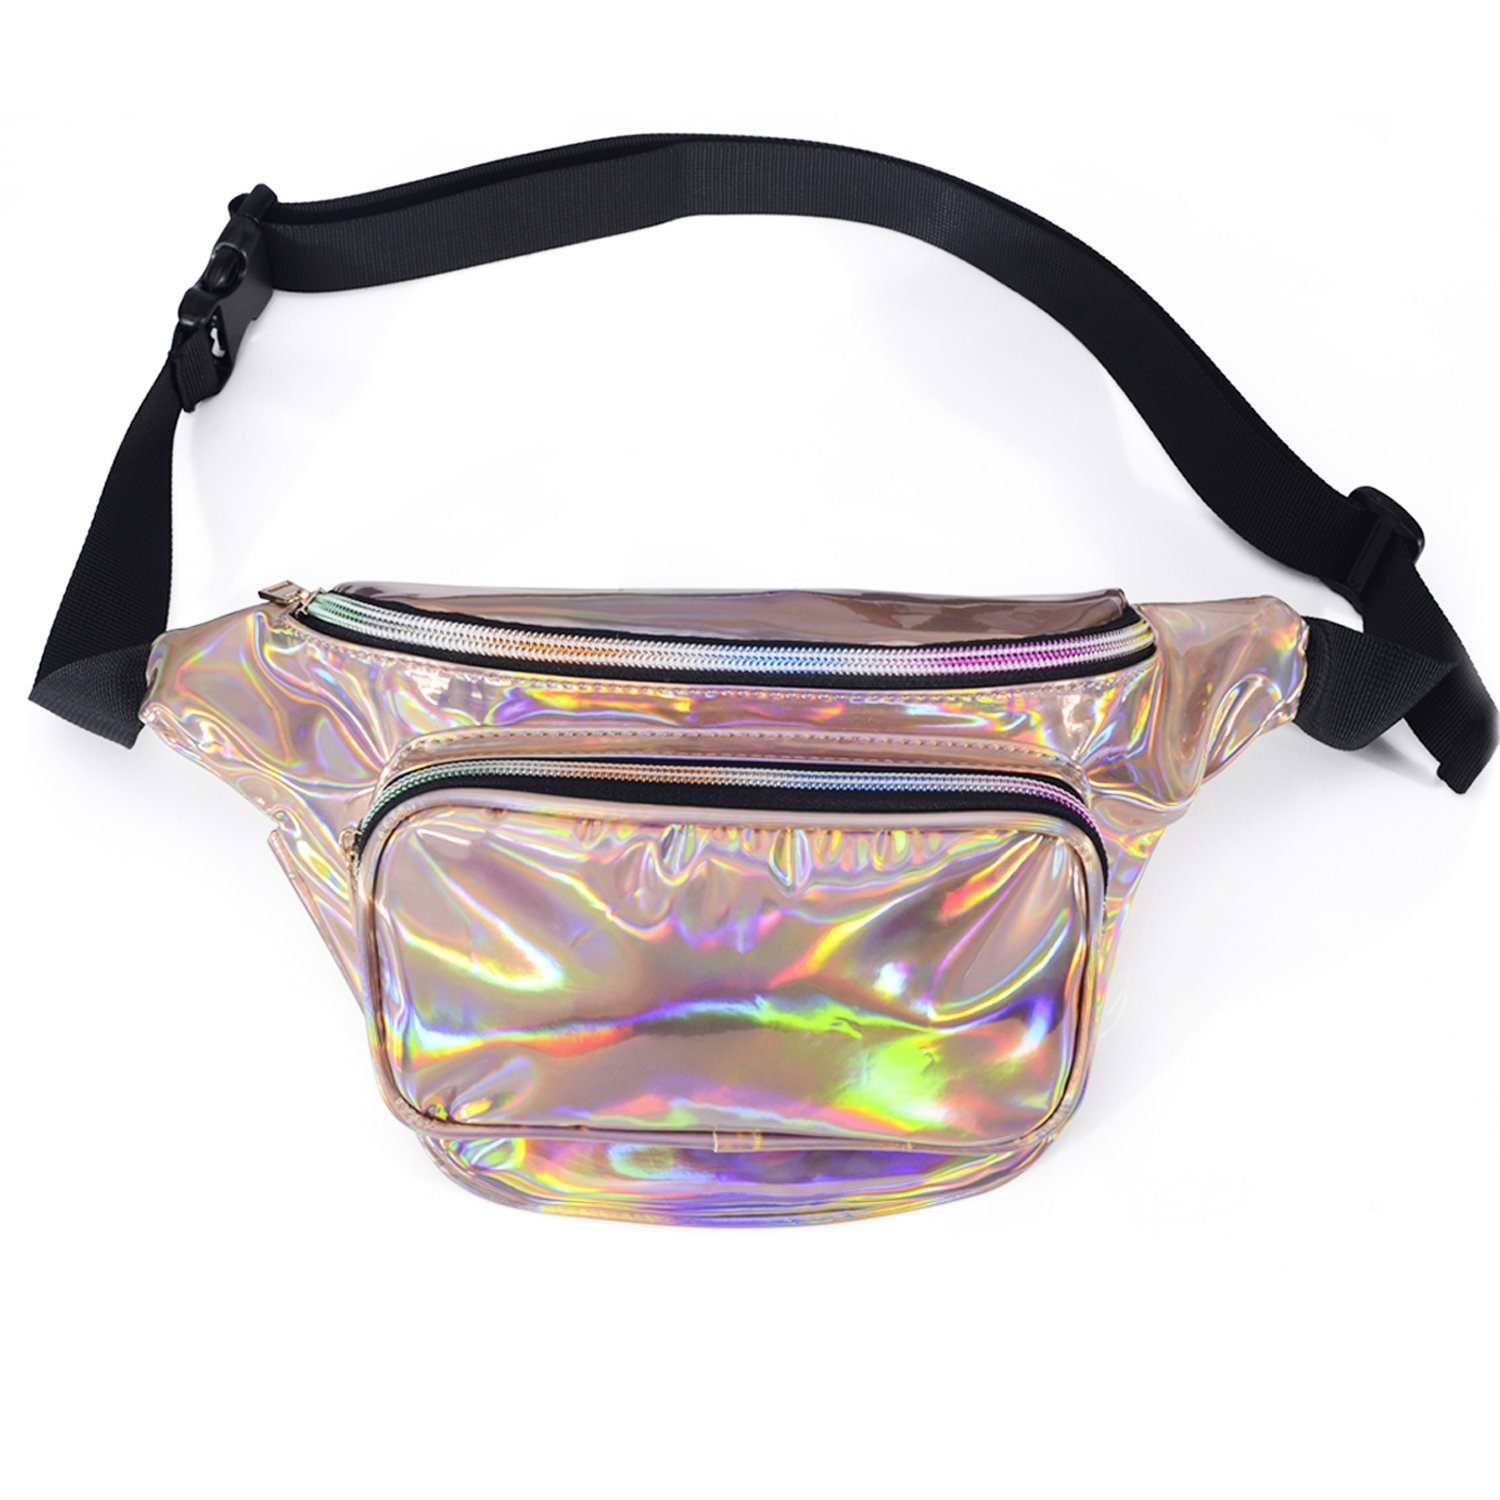 LEADO Holographic Fanny Pack for Women, Fashion Waist Pack for Rave, Festival, Party (Gold)